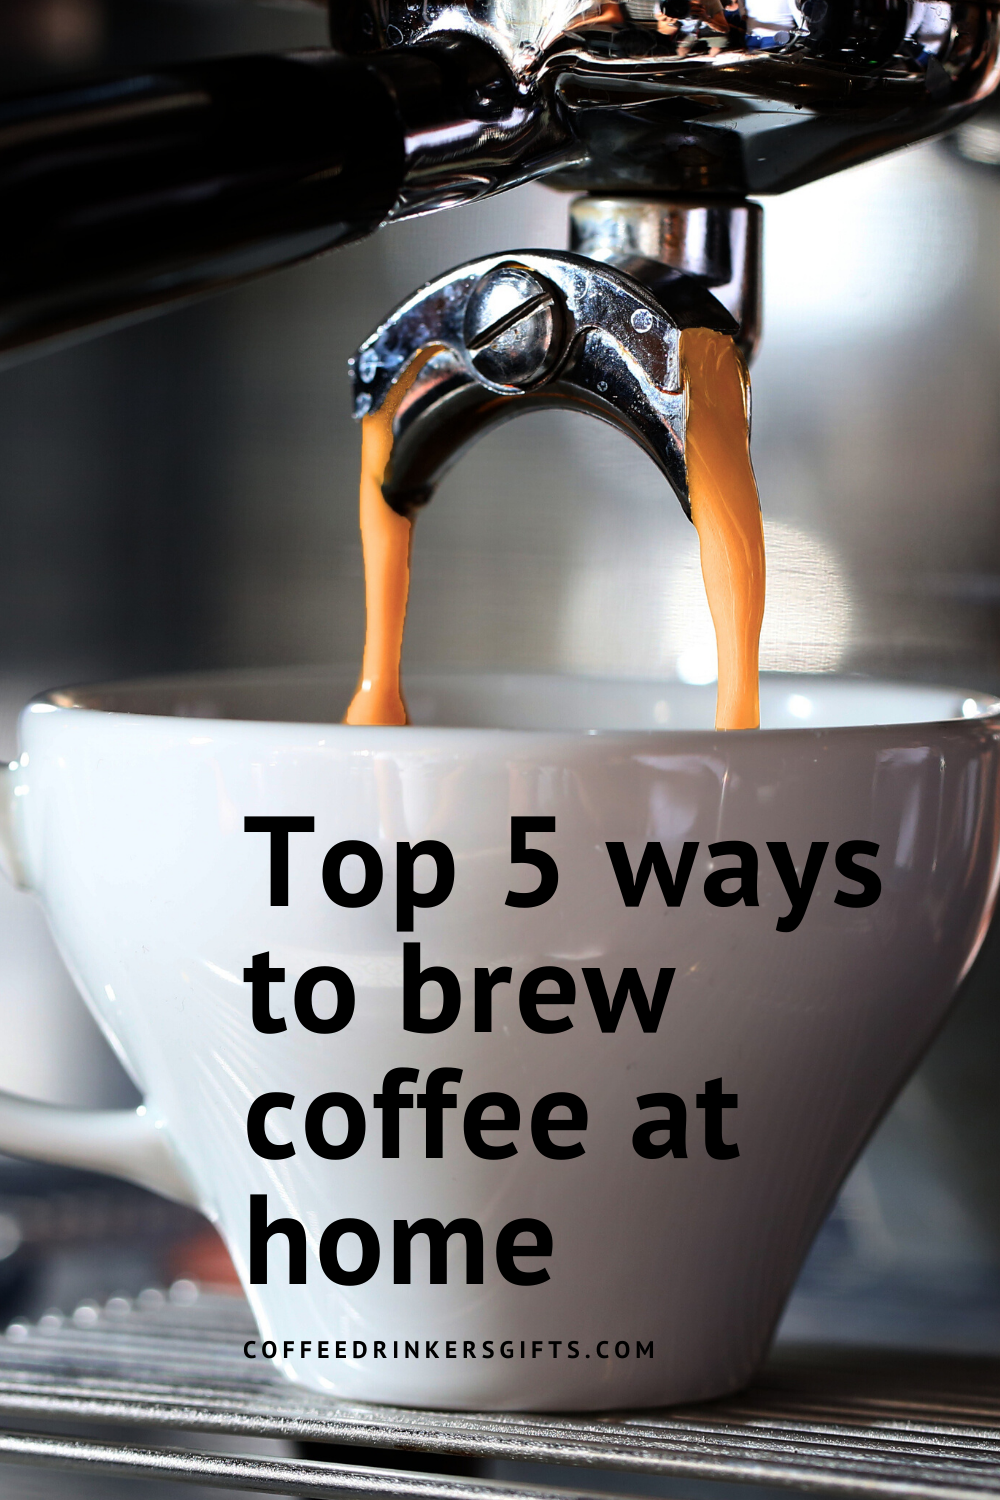 Best Coffee Maker for Your Need? in 2020 Coffee drinkers